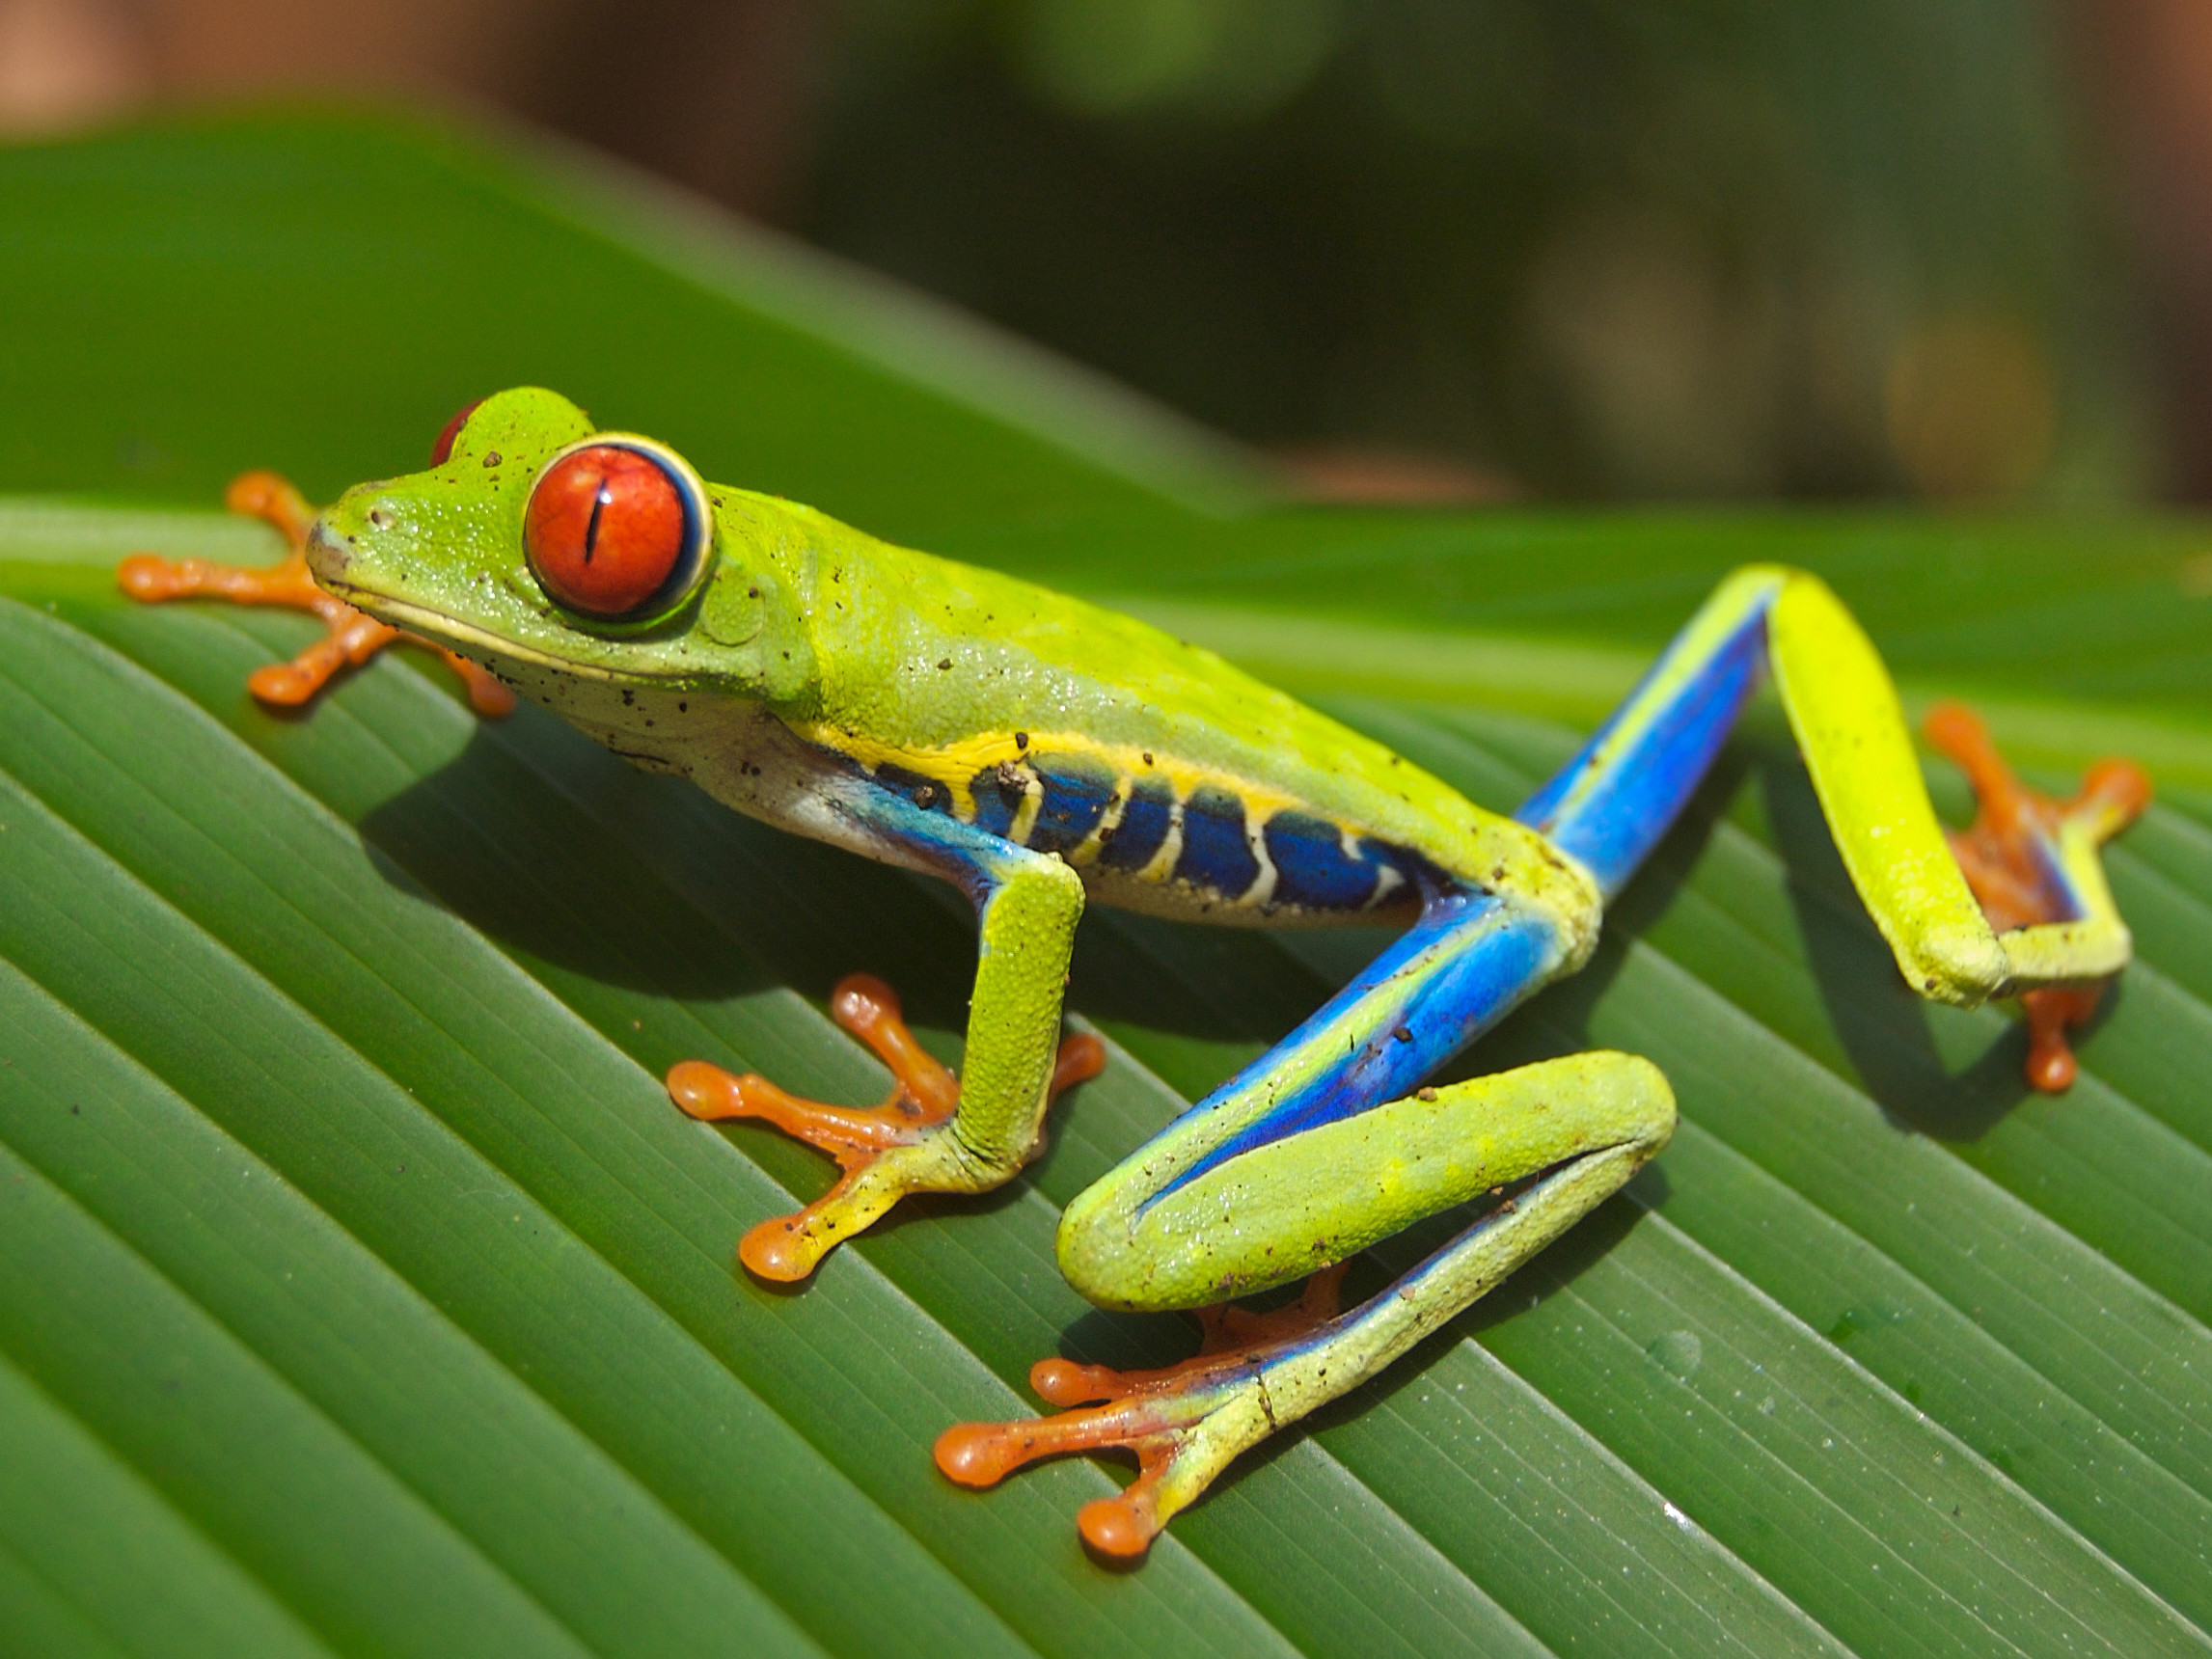 Res: 2293x1720, Tree Frog Wallpapers 16 - 2293 X 1720